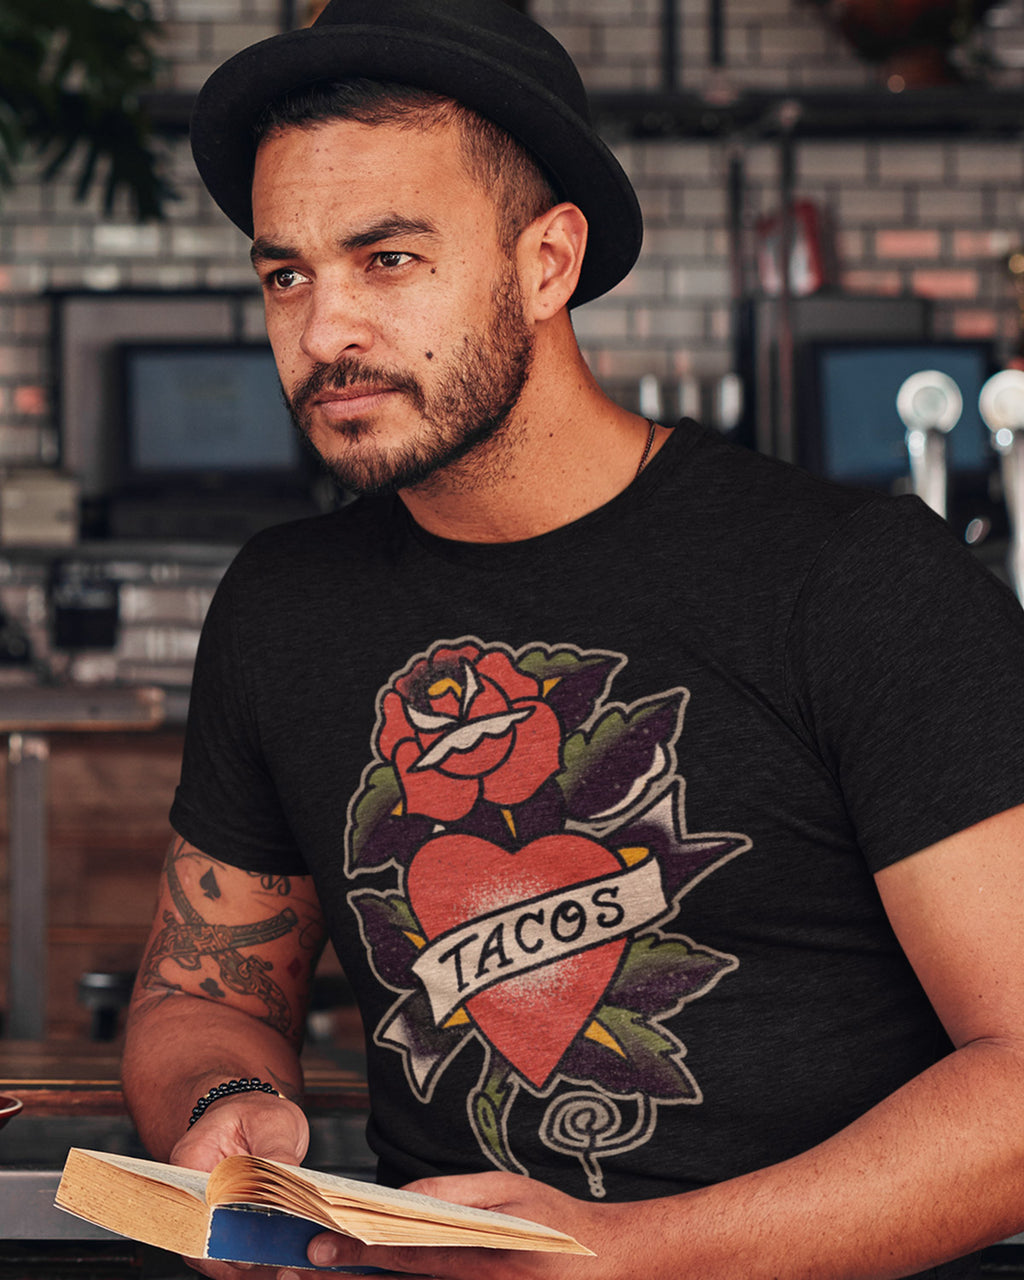 black Traditional Tacos Shirt - Taco Gear on model